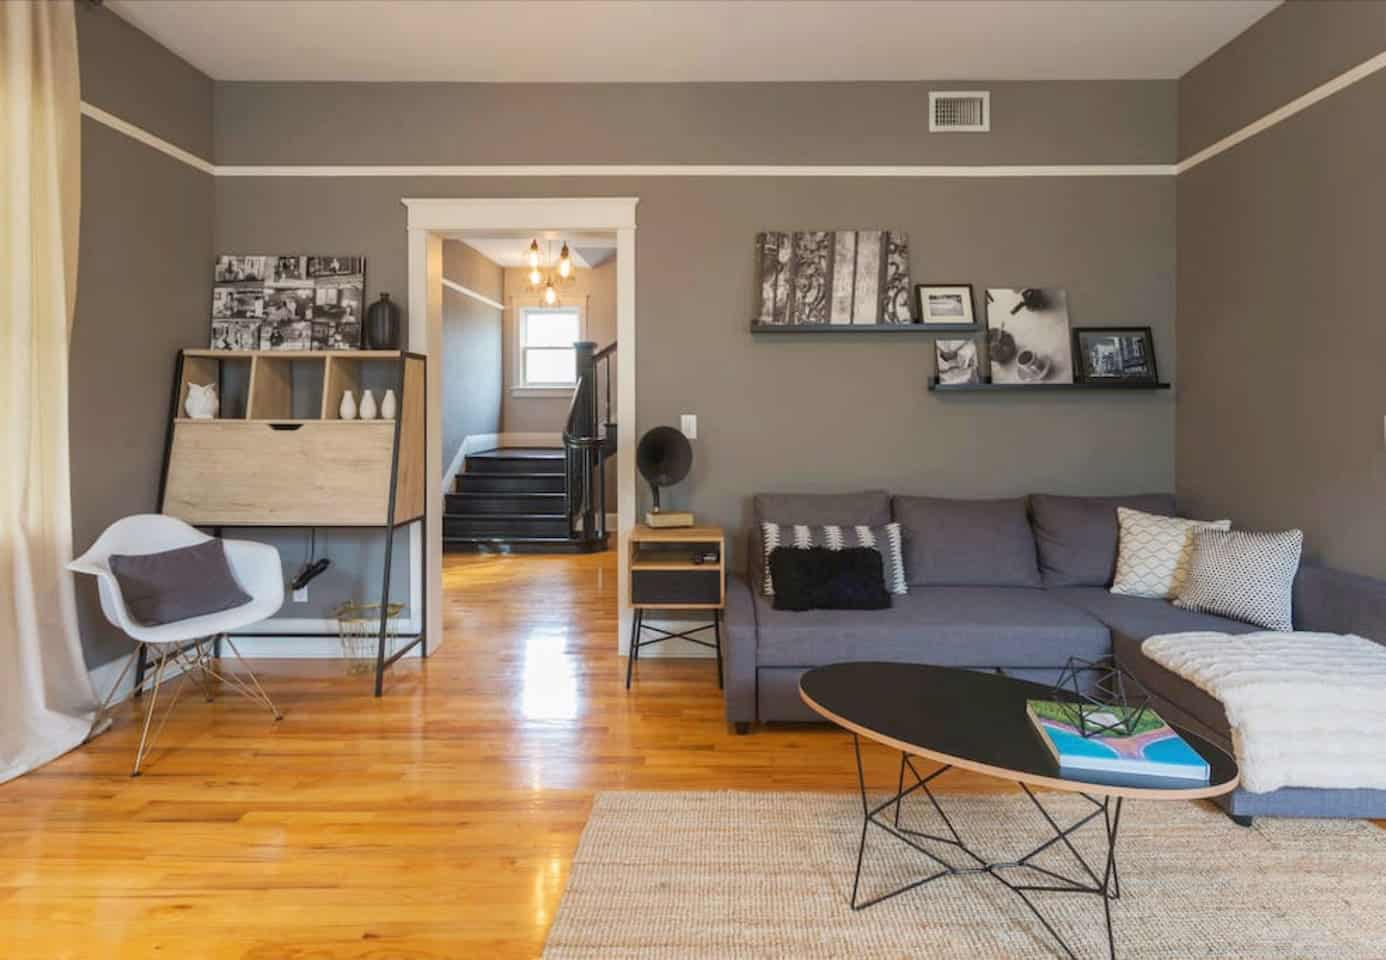 Image of Airbnb rental in Tampa